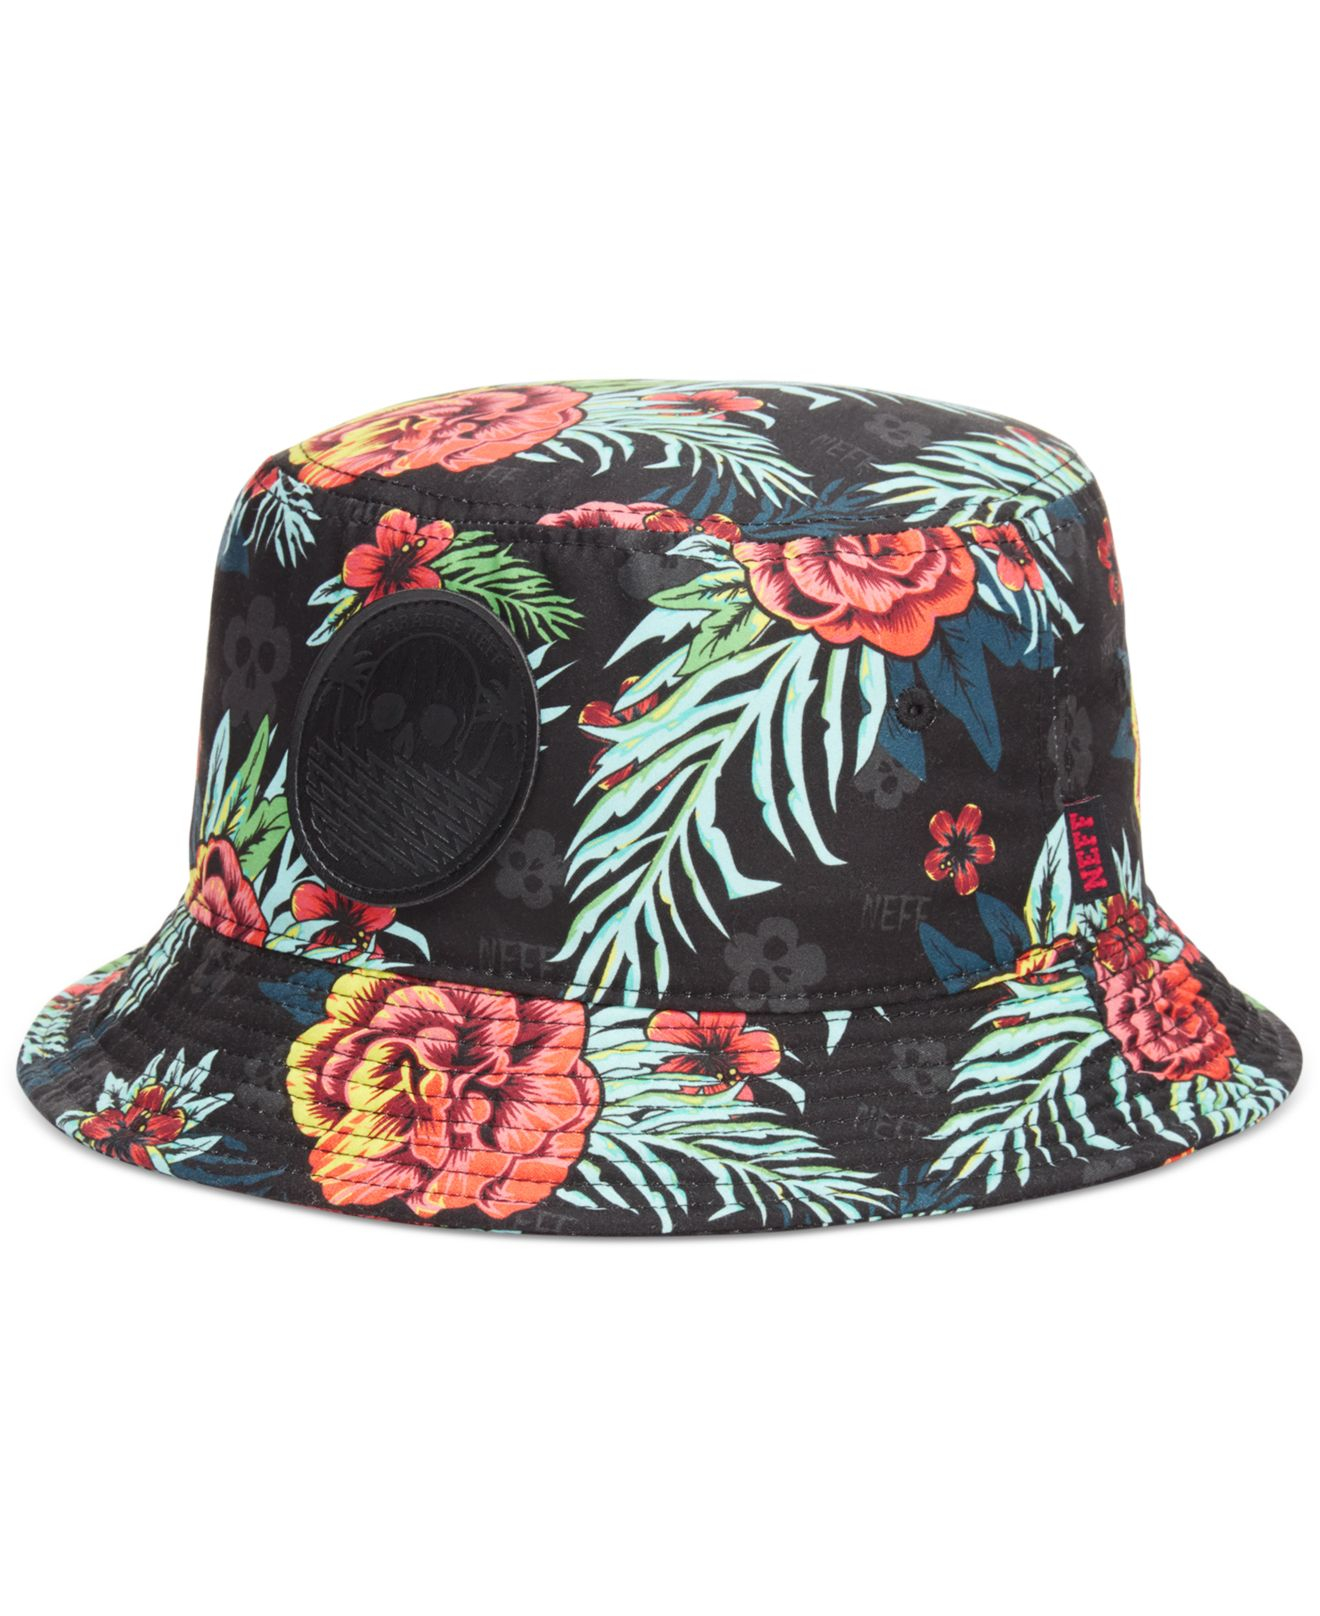 29bcc4d3a71 Lyst - Neff Astro Bucket Hat in Black for Men